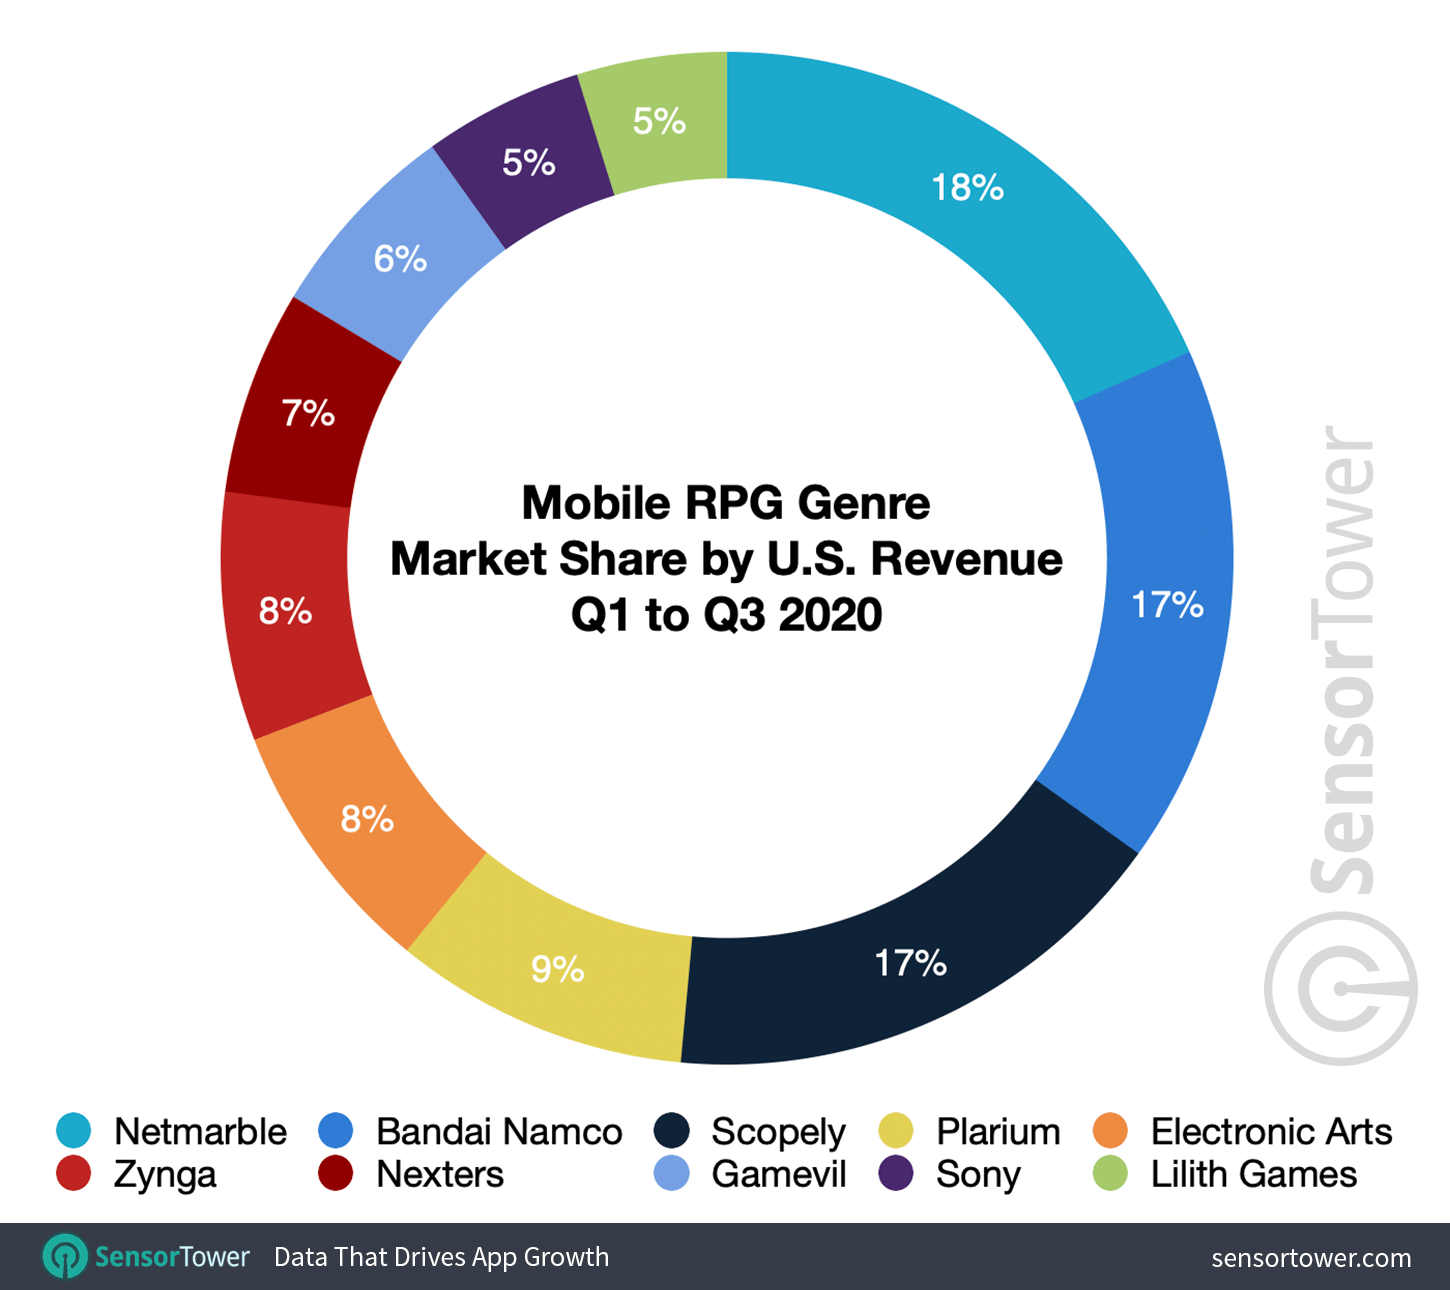 Mobile RPG Genre Market Share by U.S. Revenue for Q1 to Q3 2020